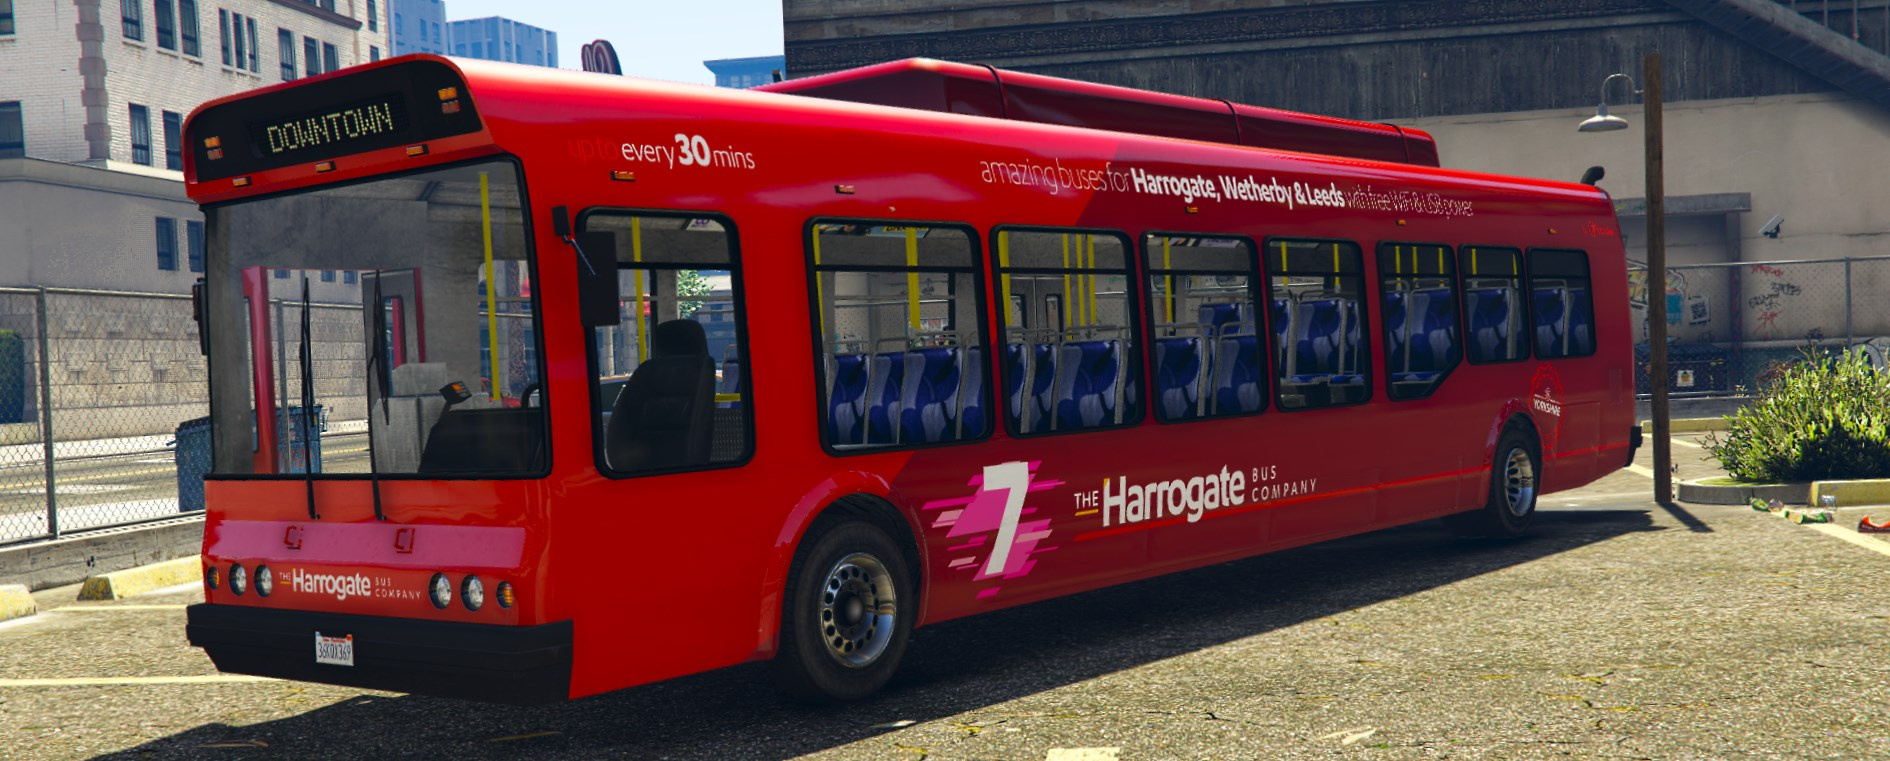 Mercedes North Haven >> The Harrogate Bus Company - Livery Pack for the Vanilla Bus - GTA5-Mods.com